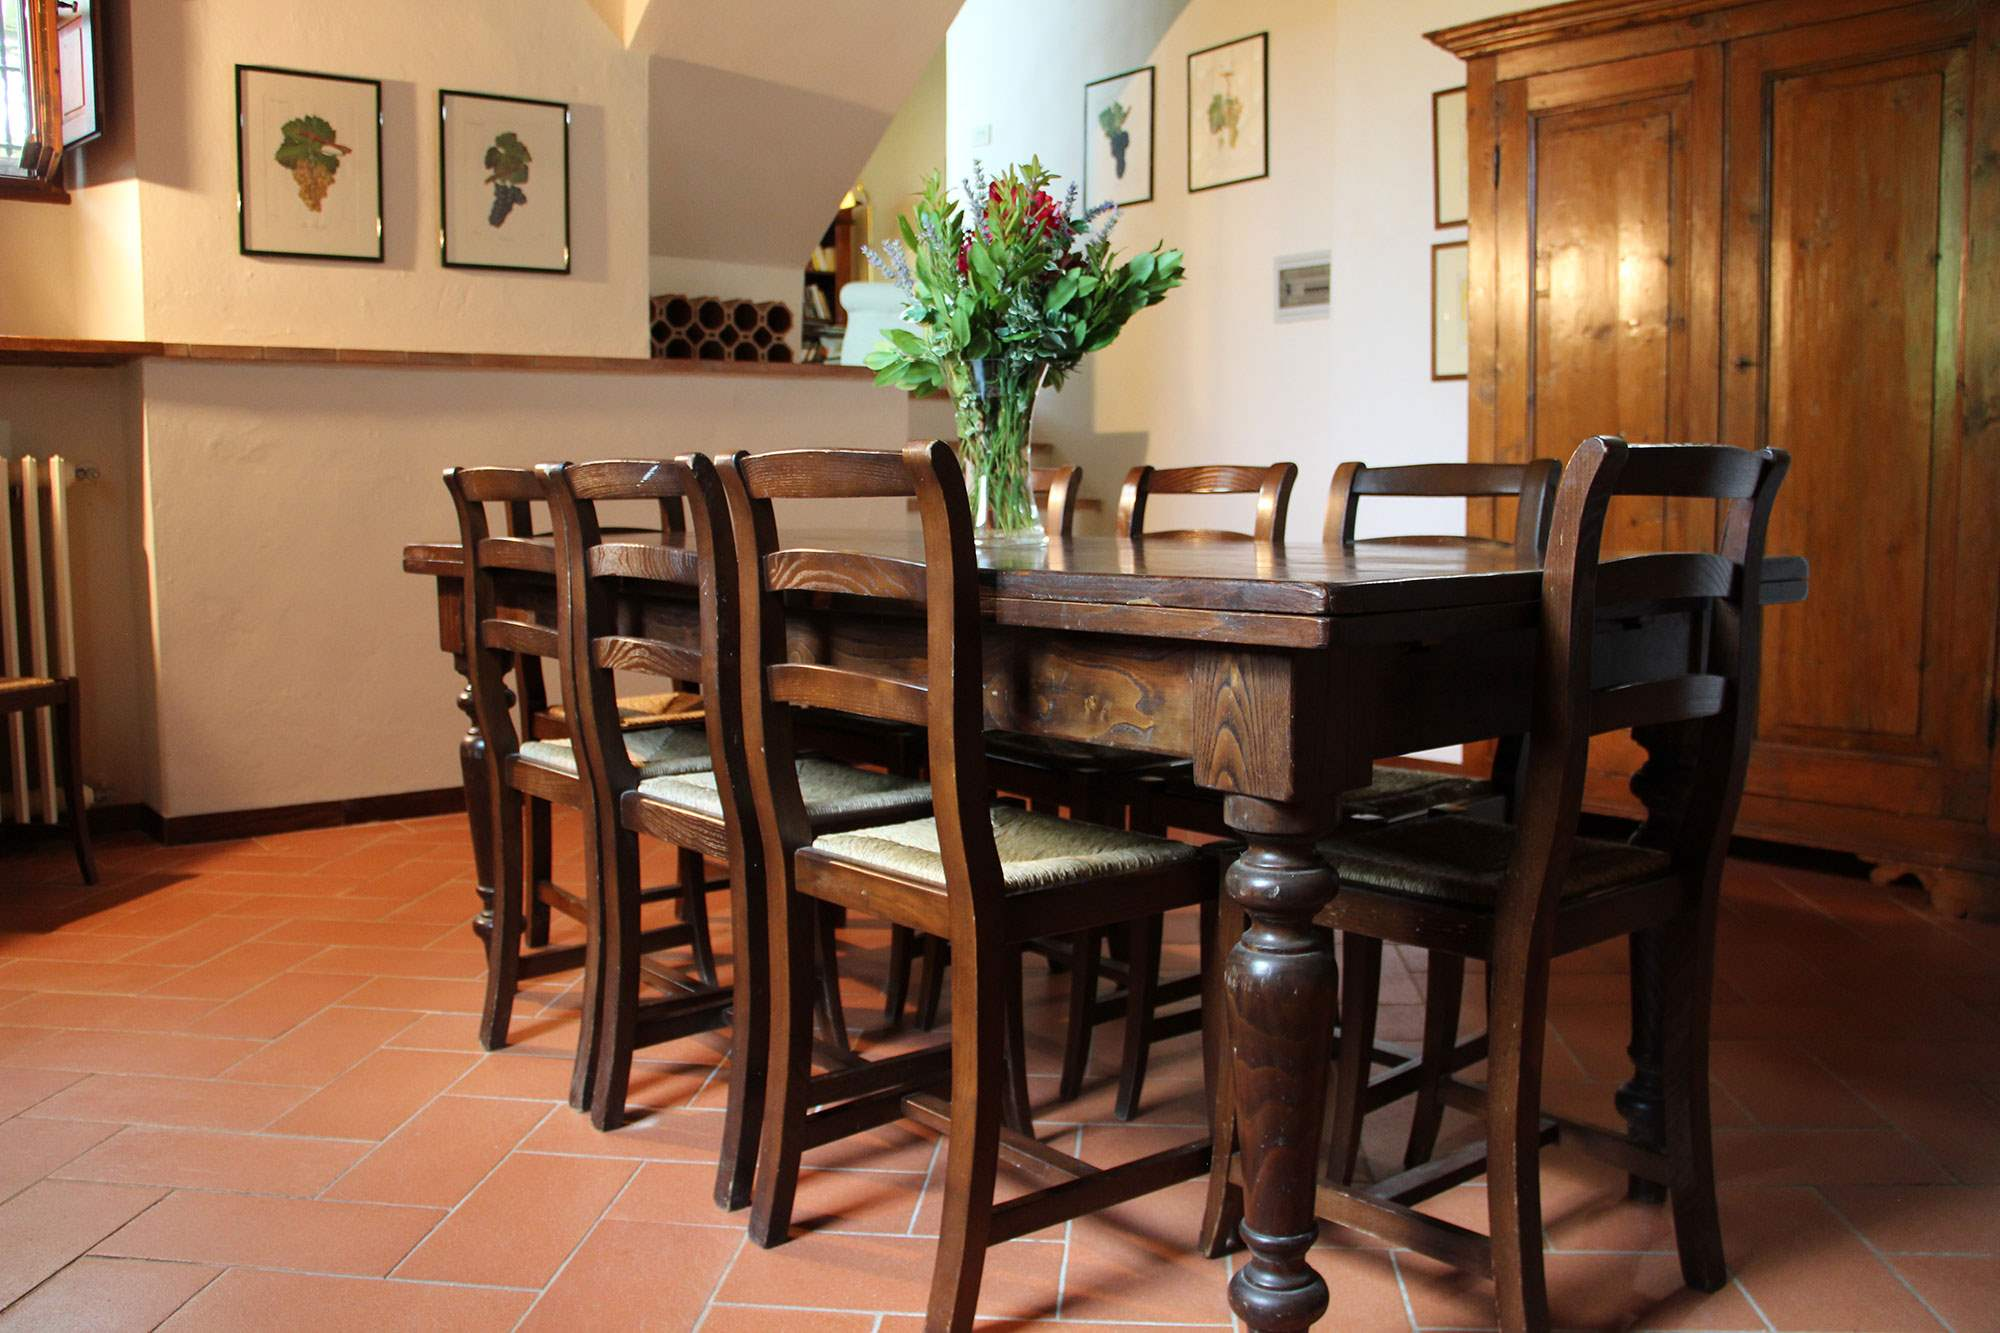 Casas Ferruzzi, 8 bedroom apartment in Chianti & Countryside, Tuscany Photo #7